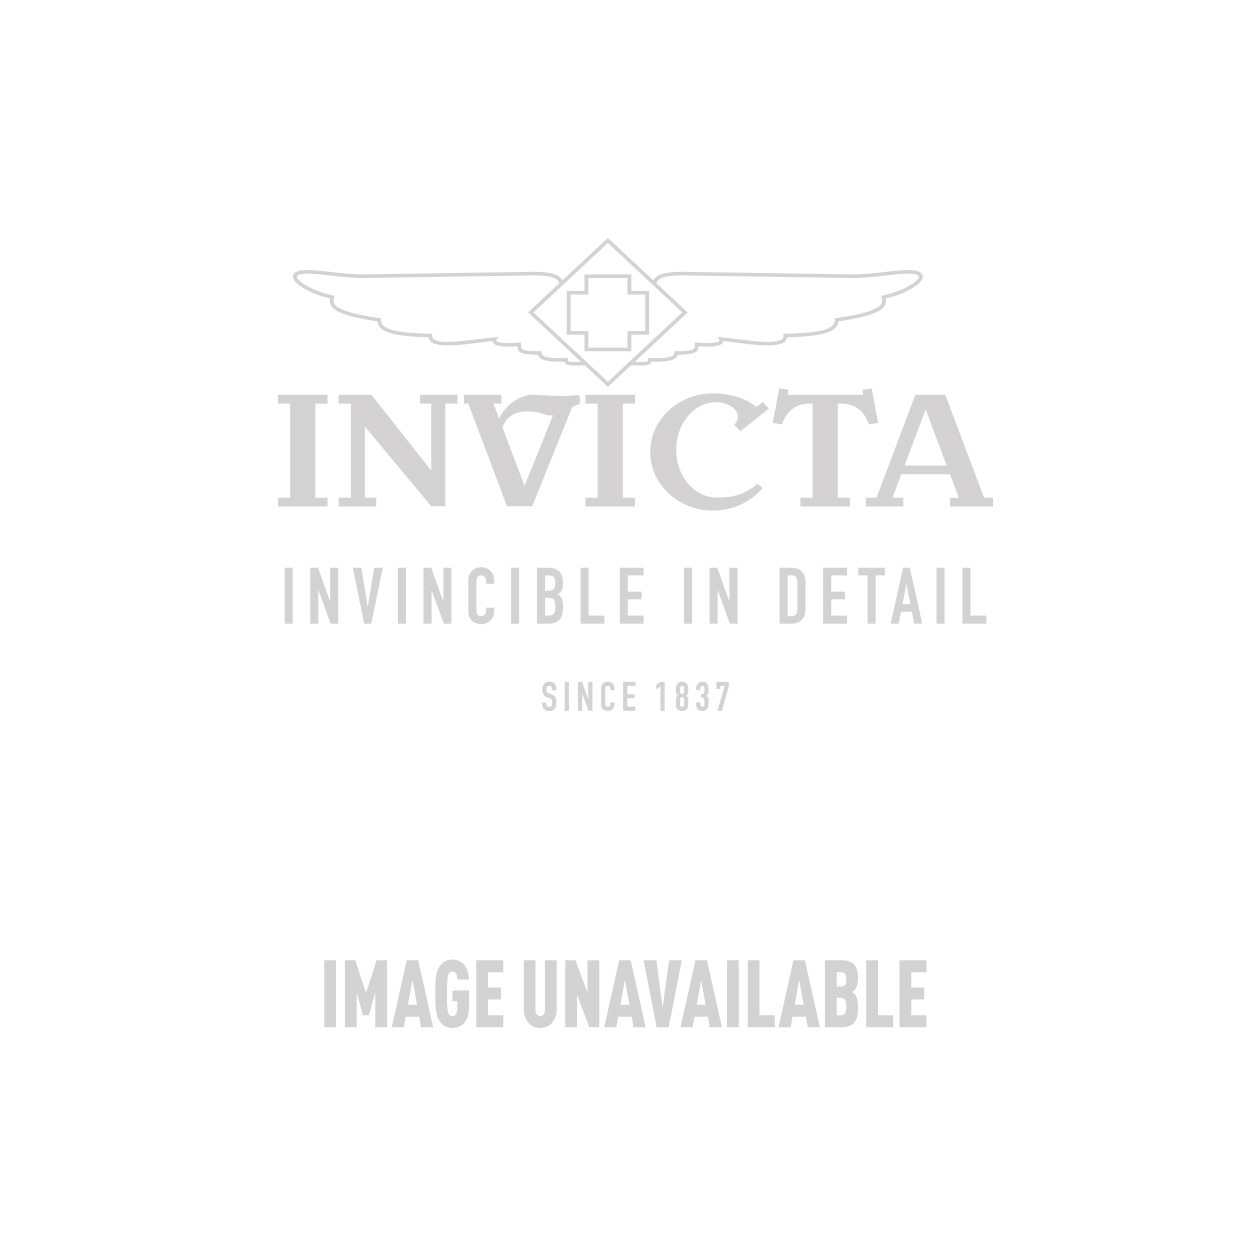 Invicta Specialty Swiss Movement Quartz Watch - Gold case with Gold tone Stainless Steel band - Model 17744